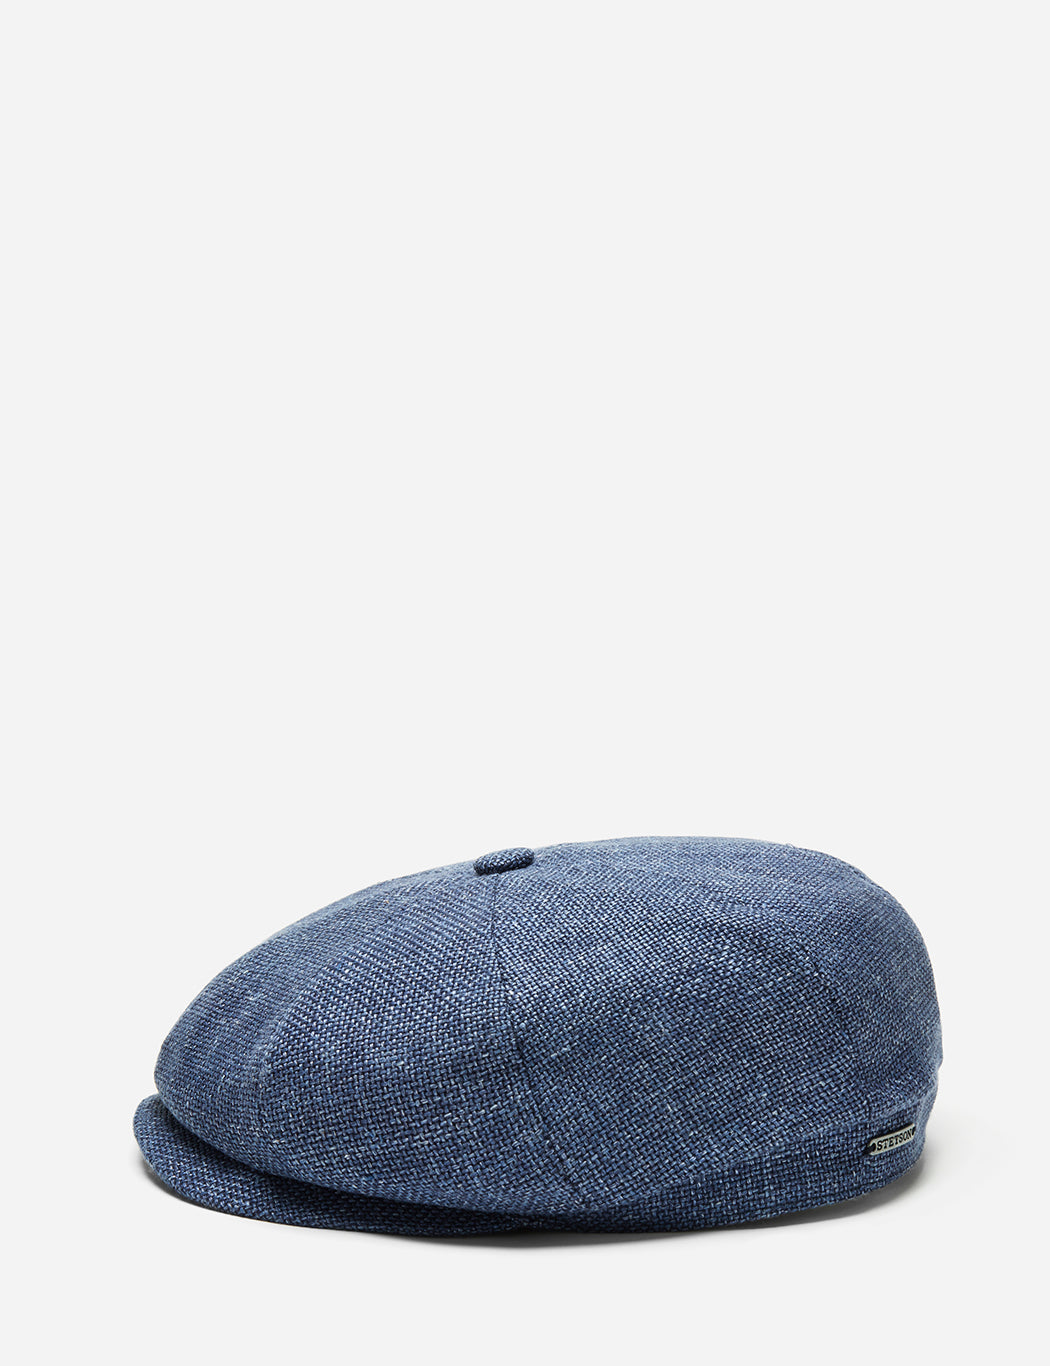 a85370213cb Stetson Hatteras Ellington Newsboy Cap (Silk Wool) in Mottled Blue